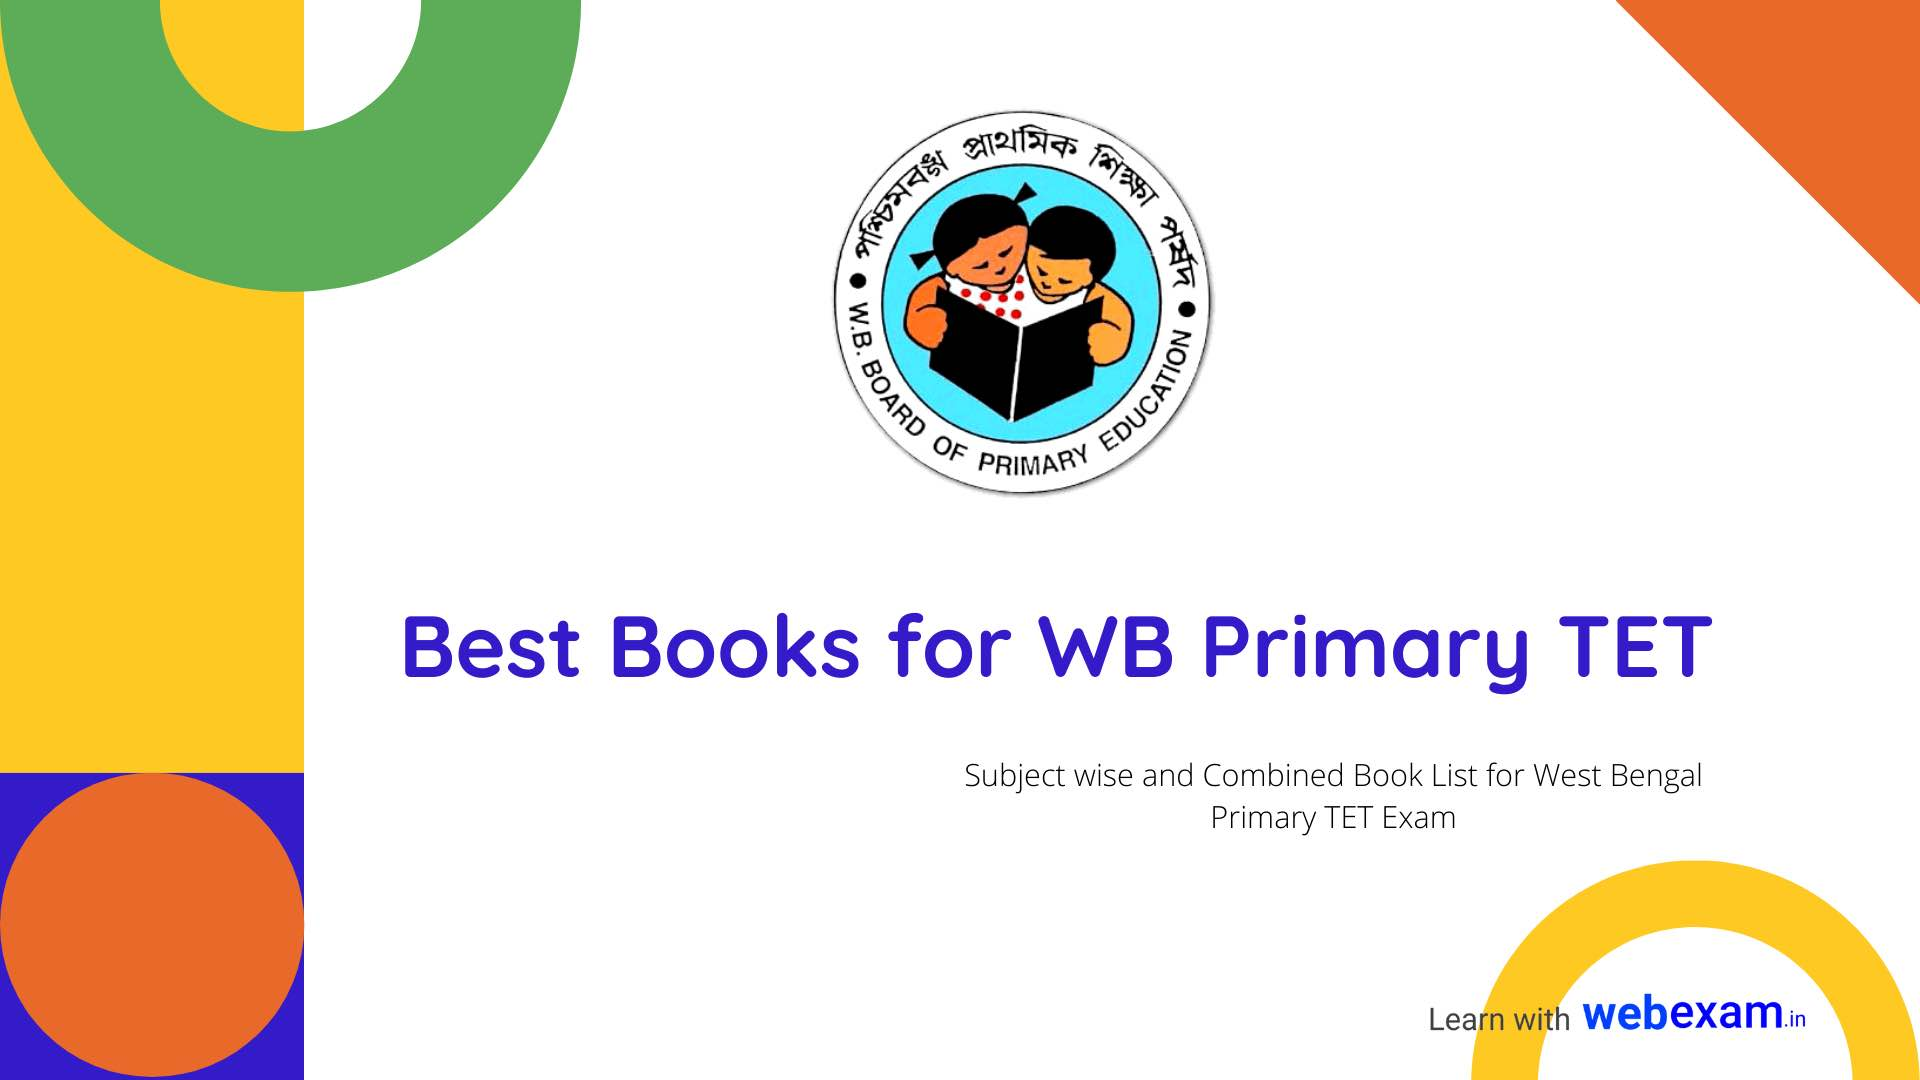 West Bengal Primary TET Best Books